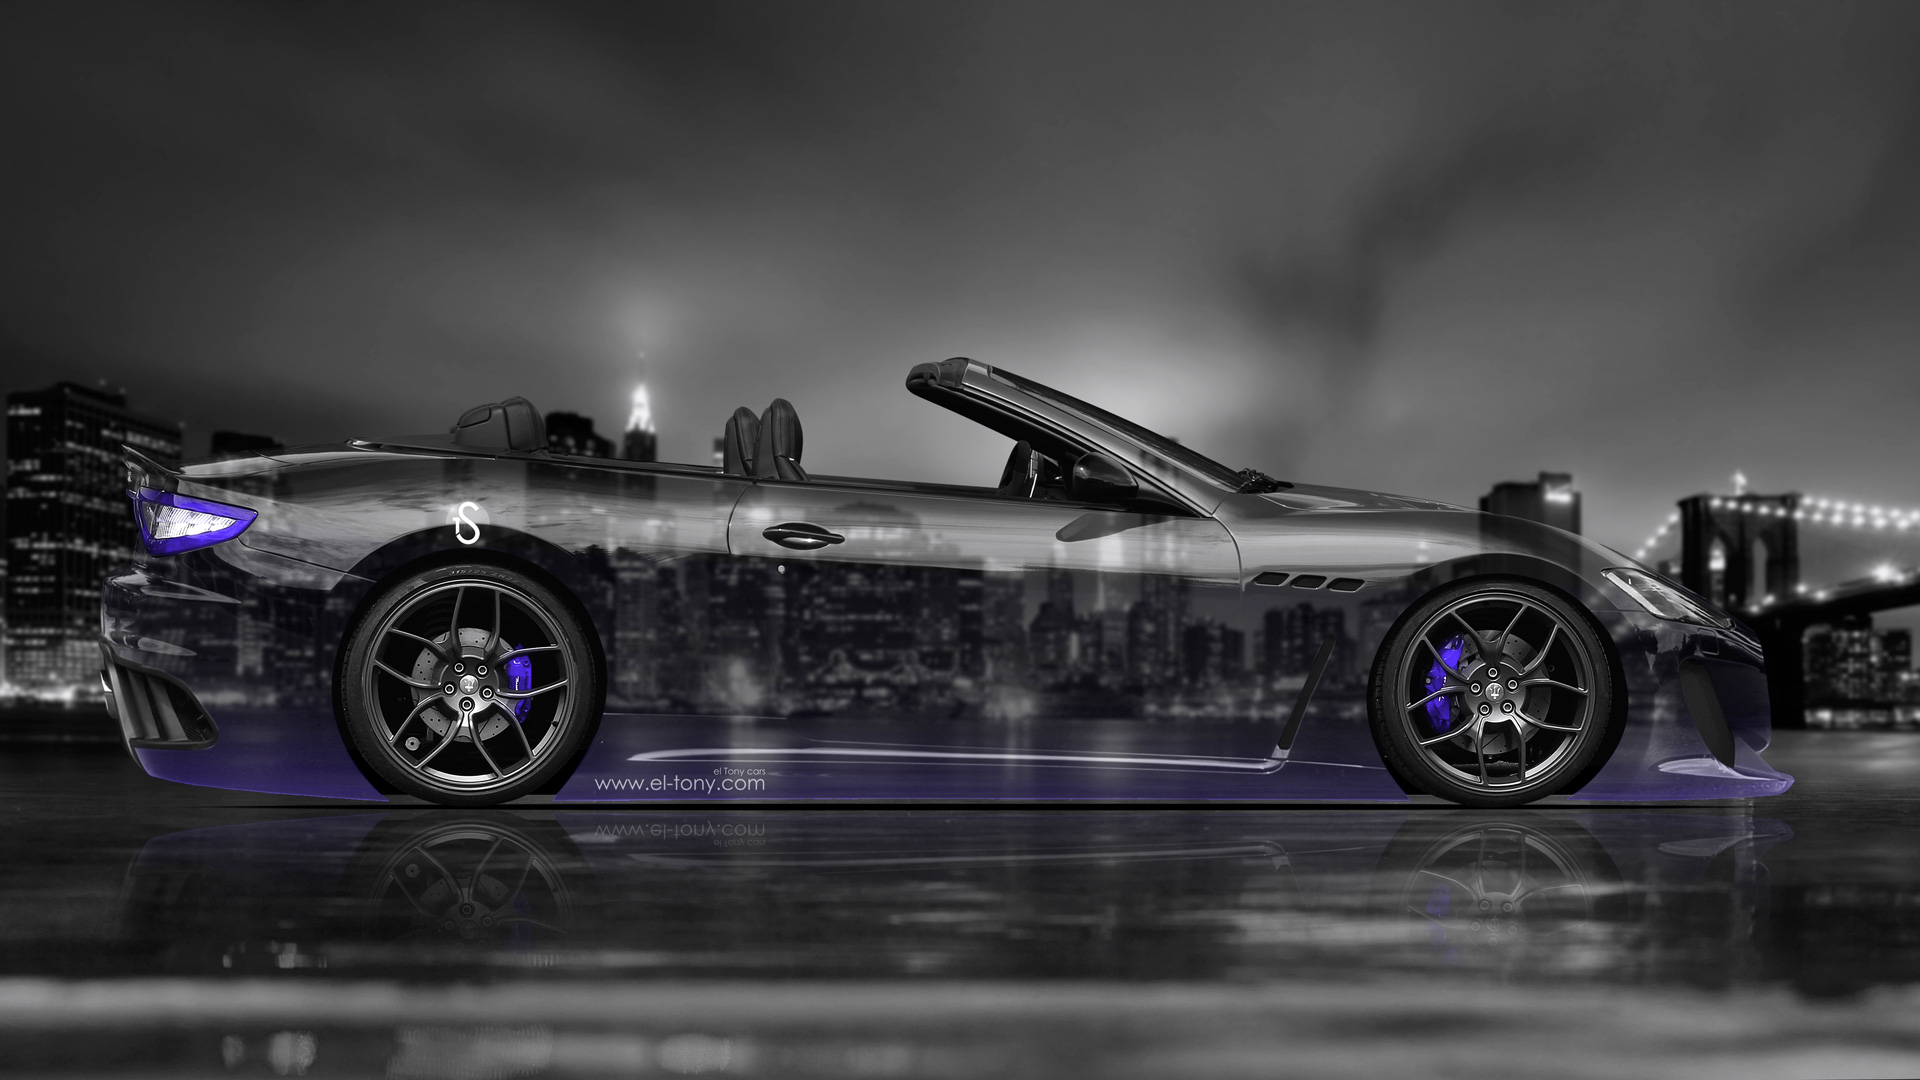 Marvelous Incroyable Maserati GranCabrio Side Crystal City Car 2014 Violet